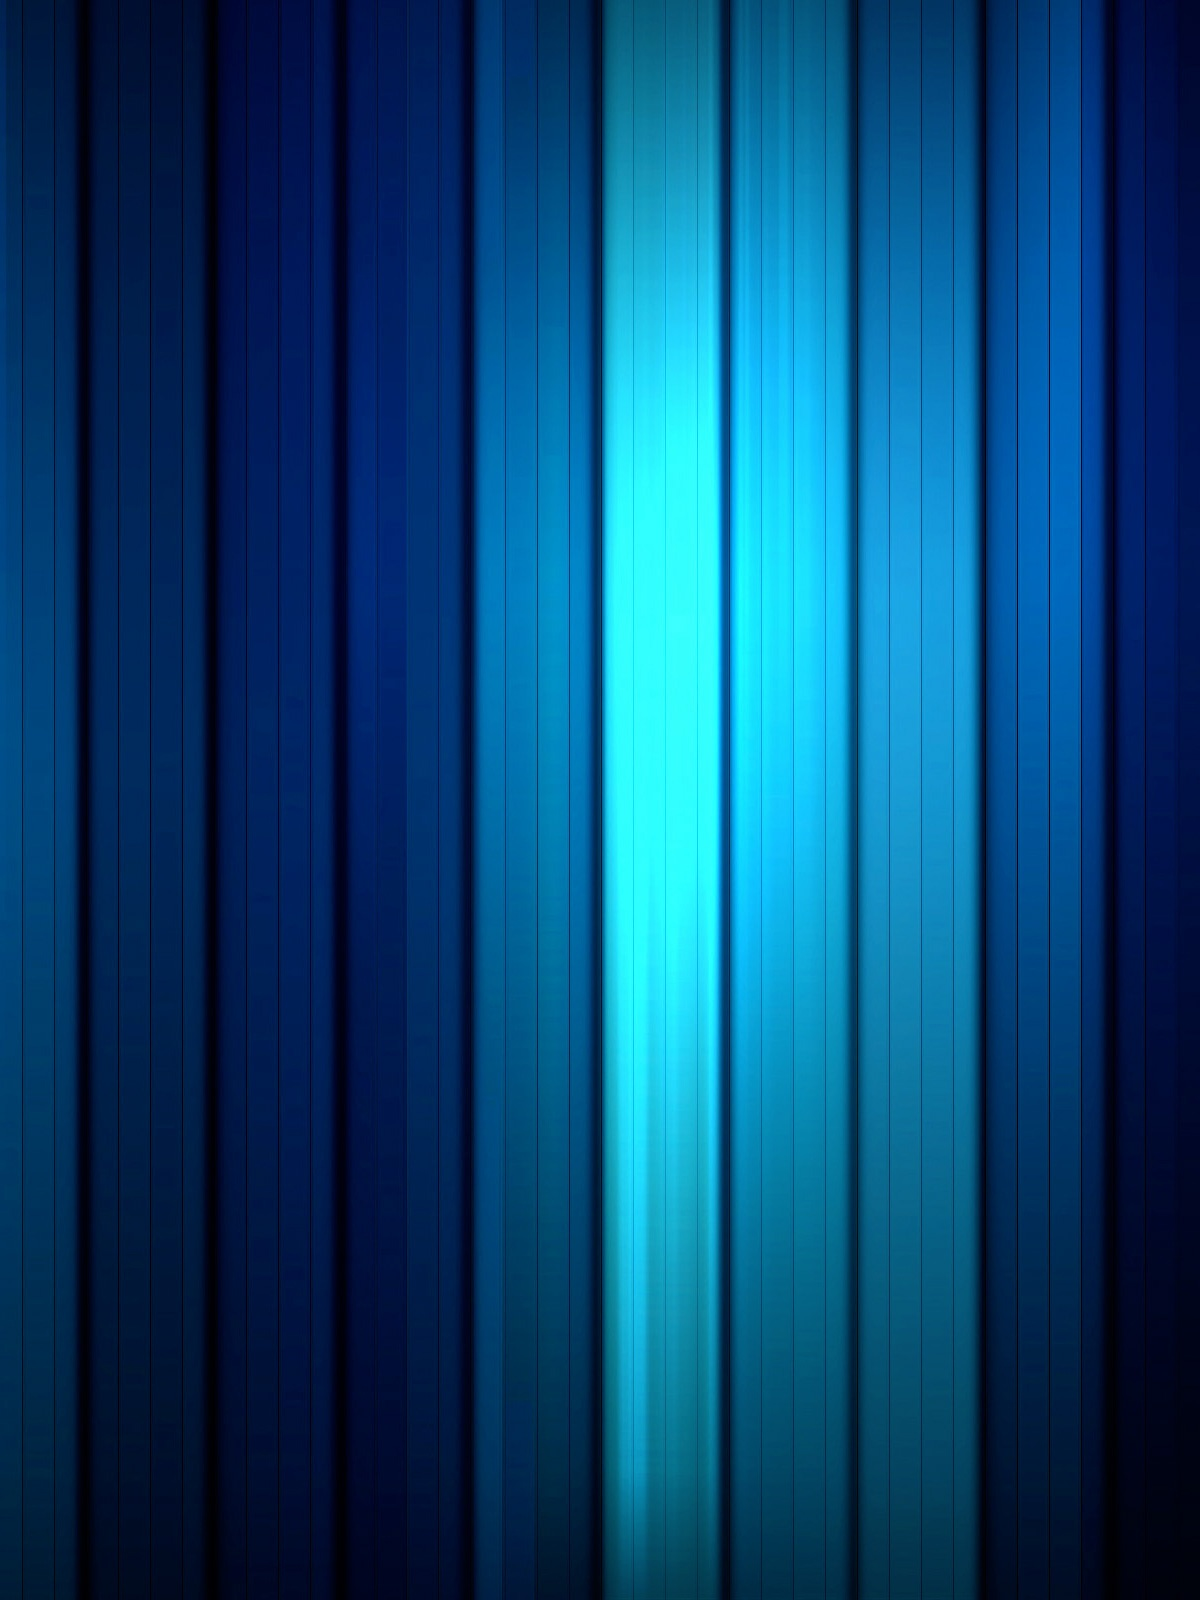 Android Wallpaper For Mobile Striped Texture Mobile Wallpaper Mobiles Wall